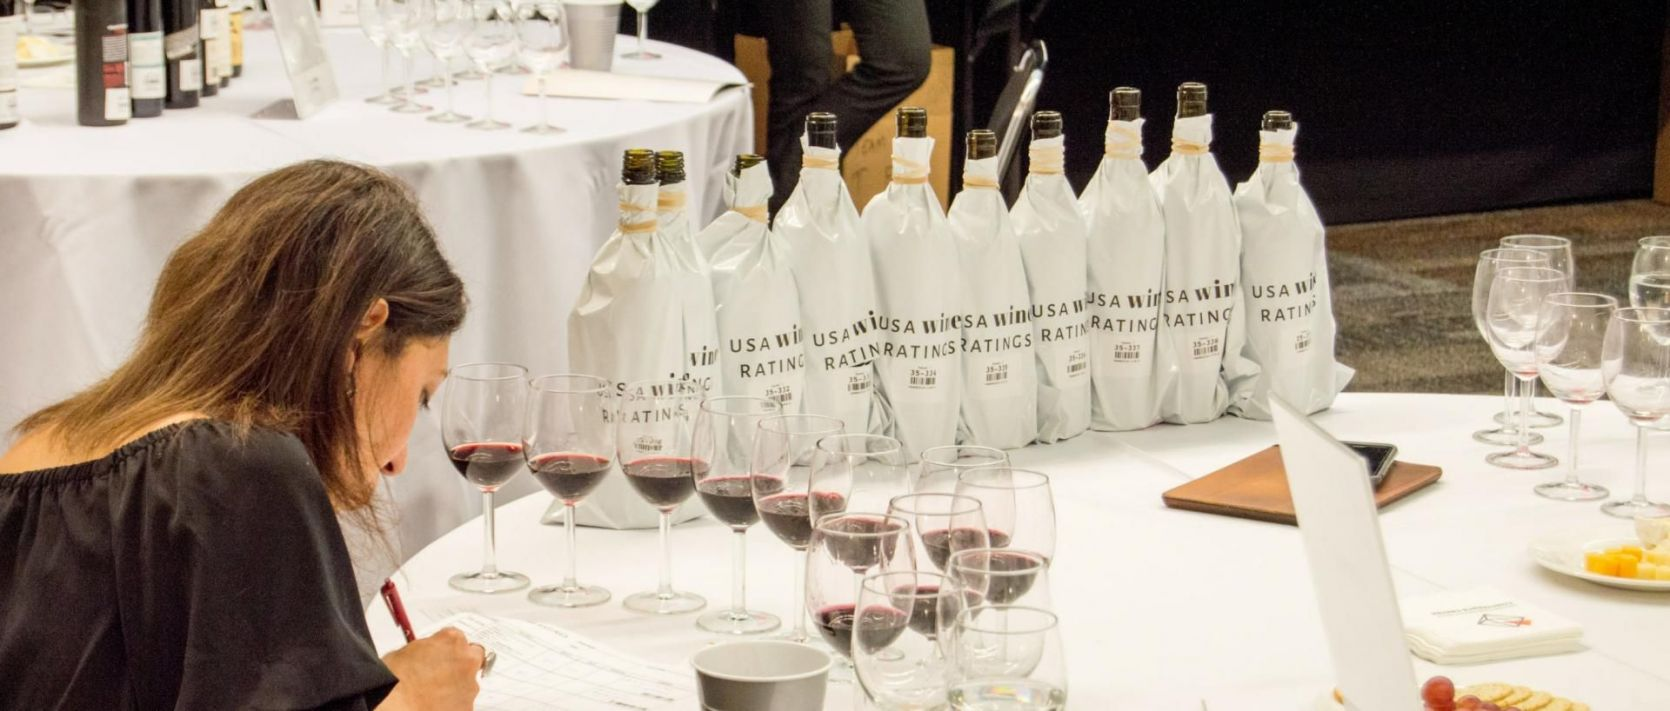 Photo for: 2019 USA Wine Ratings Entries are now open